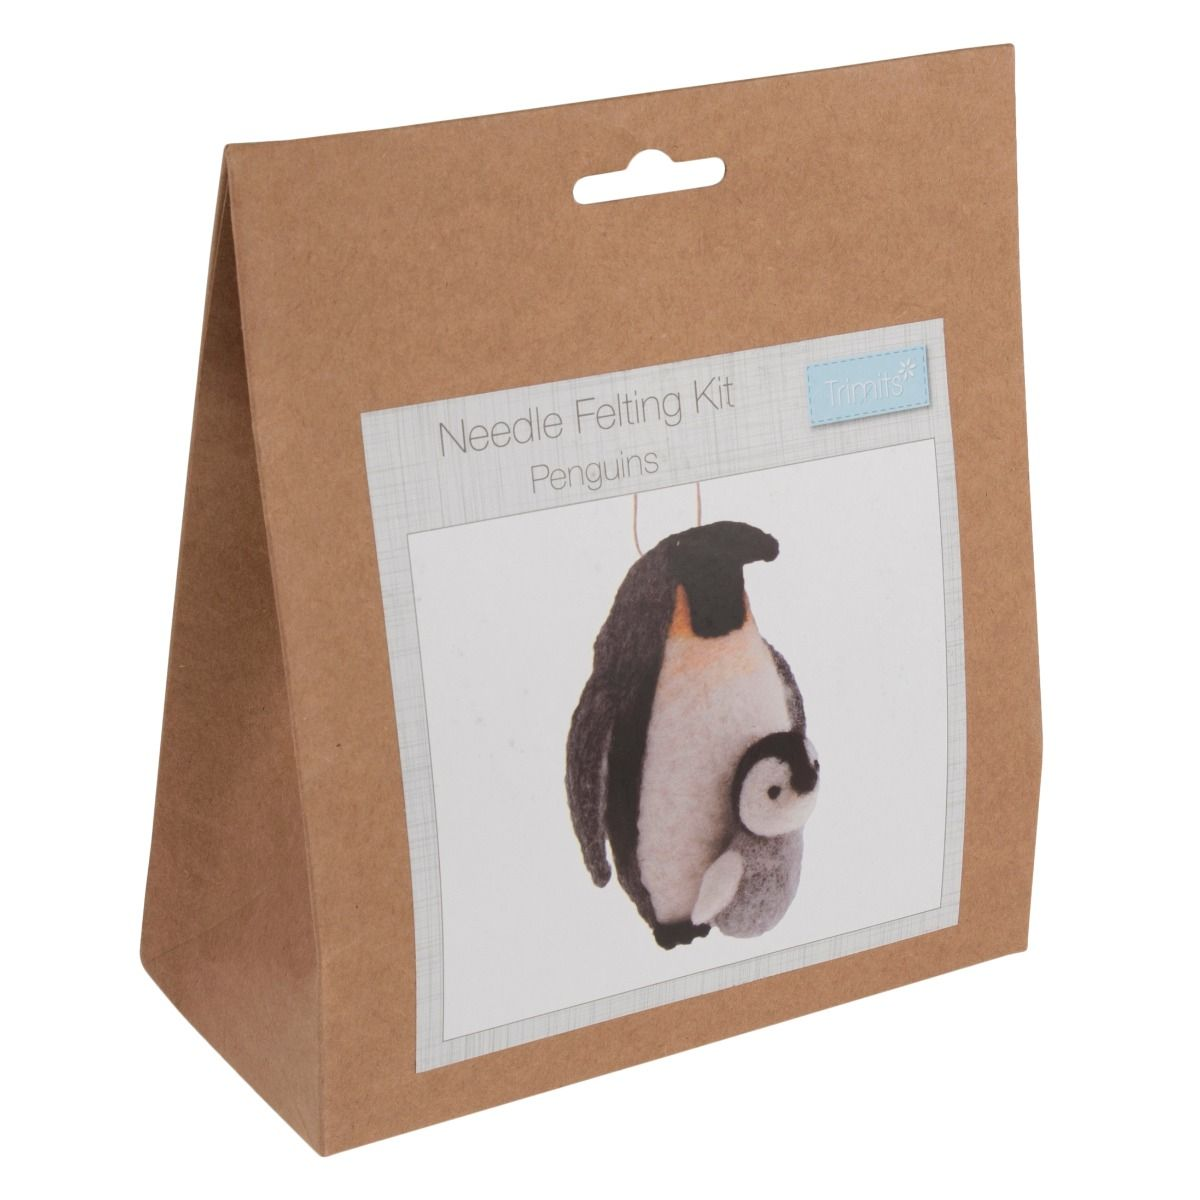 Trimits Needle Felting Kit: Penguins